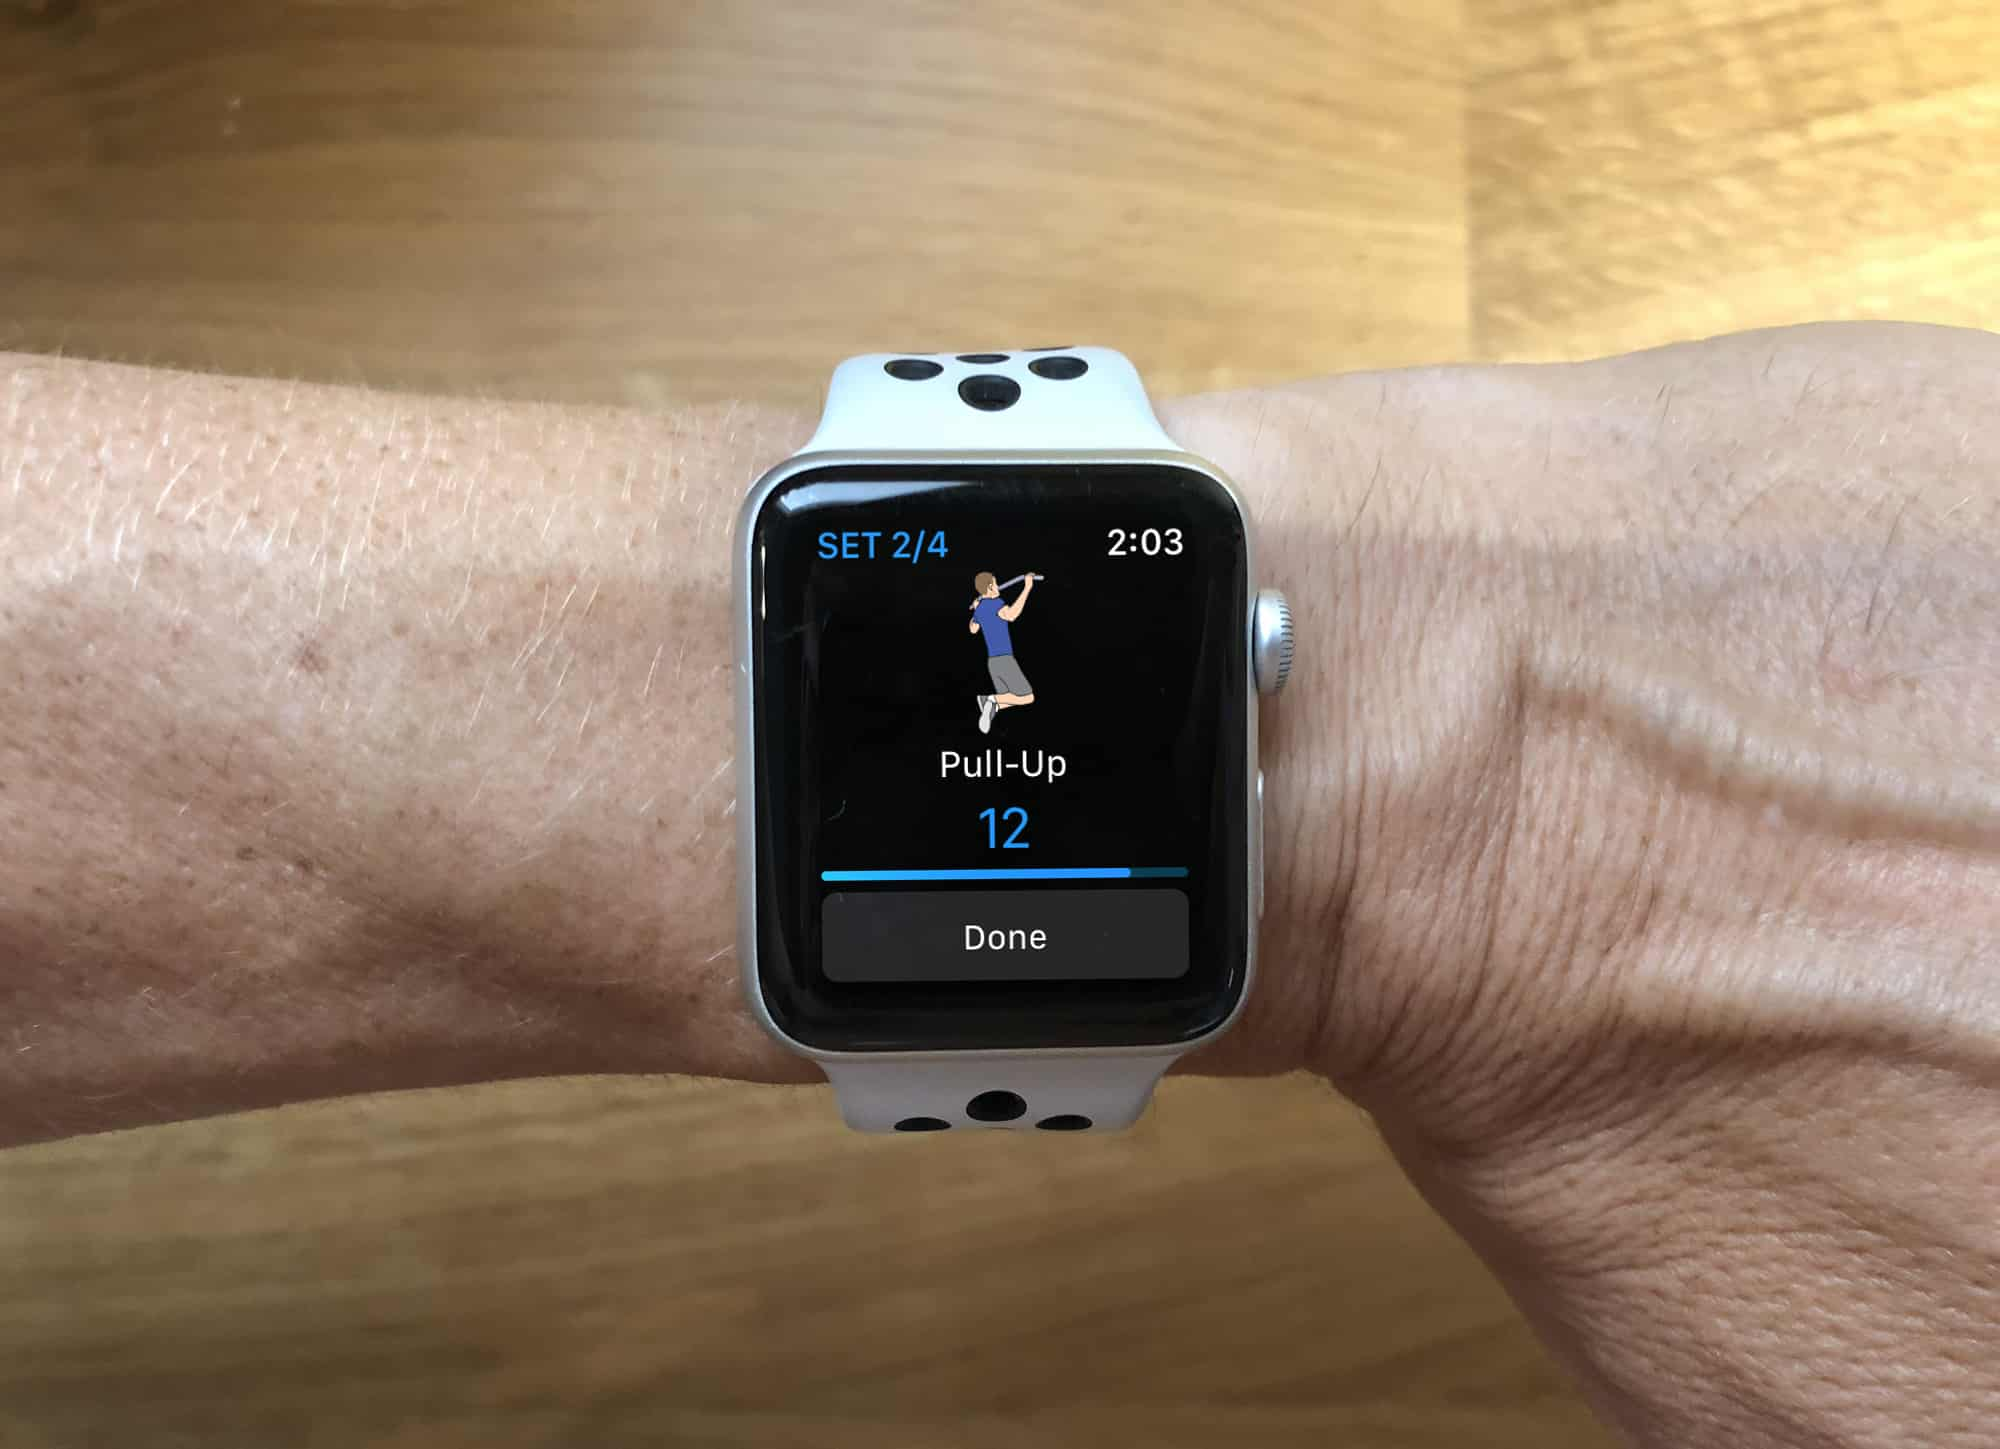 Fitness is one of the few categories where third-party Watch apps are genuinely useful